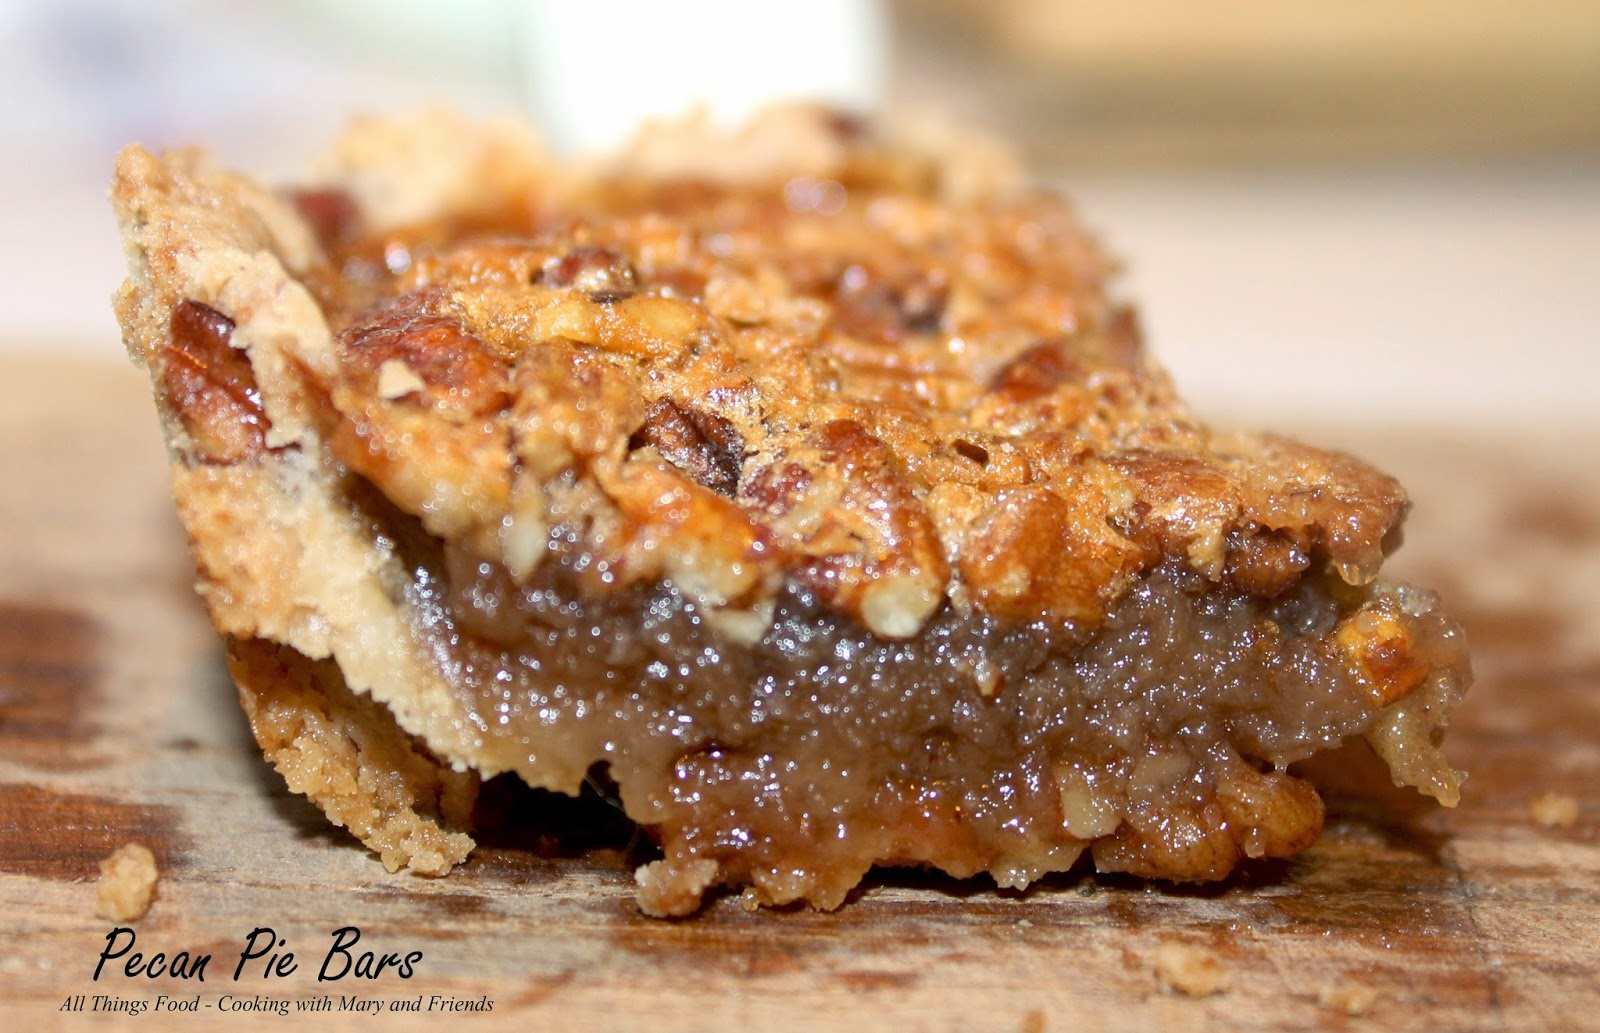 Instead of pecan pie, try these pecan pie bars! The best of both ...